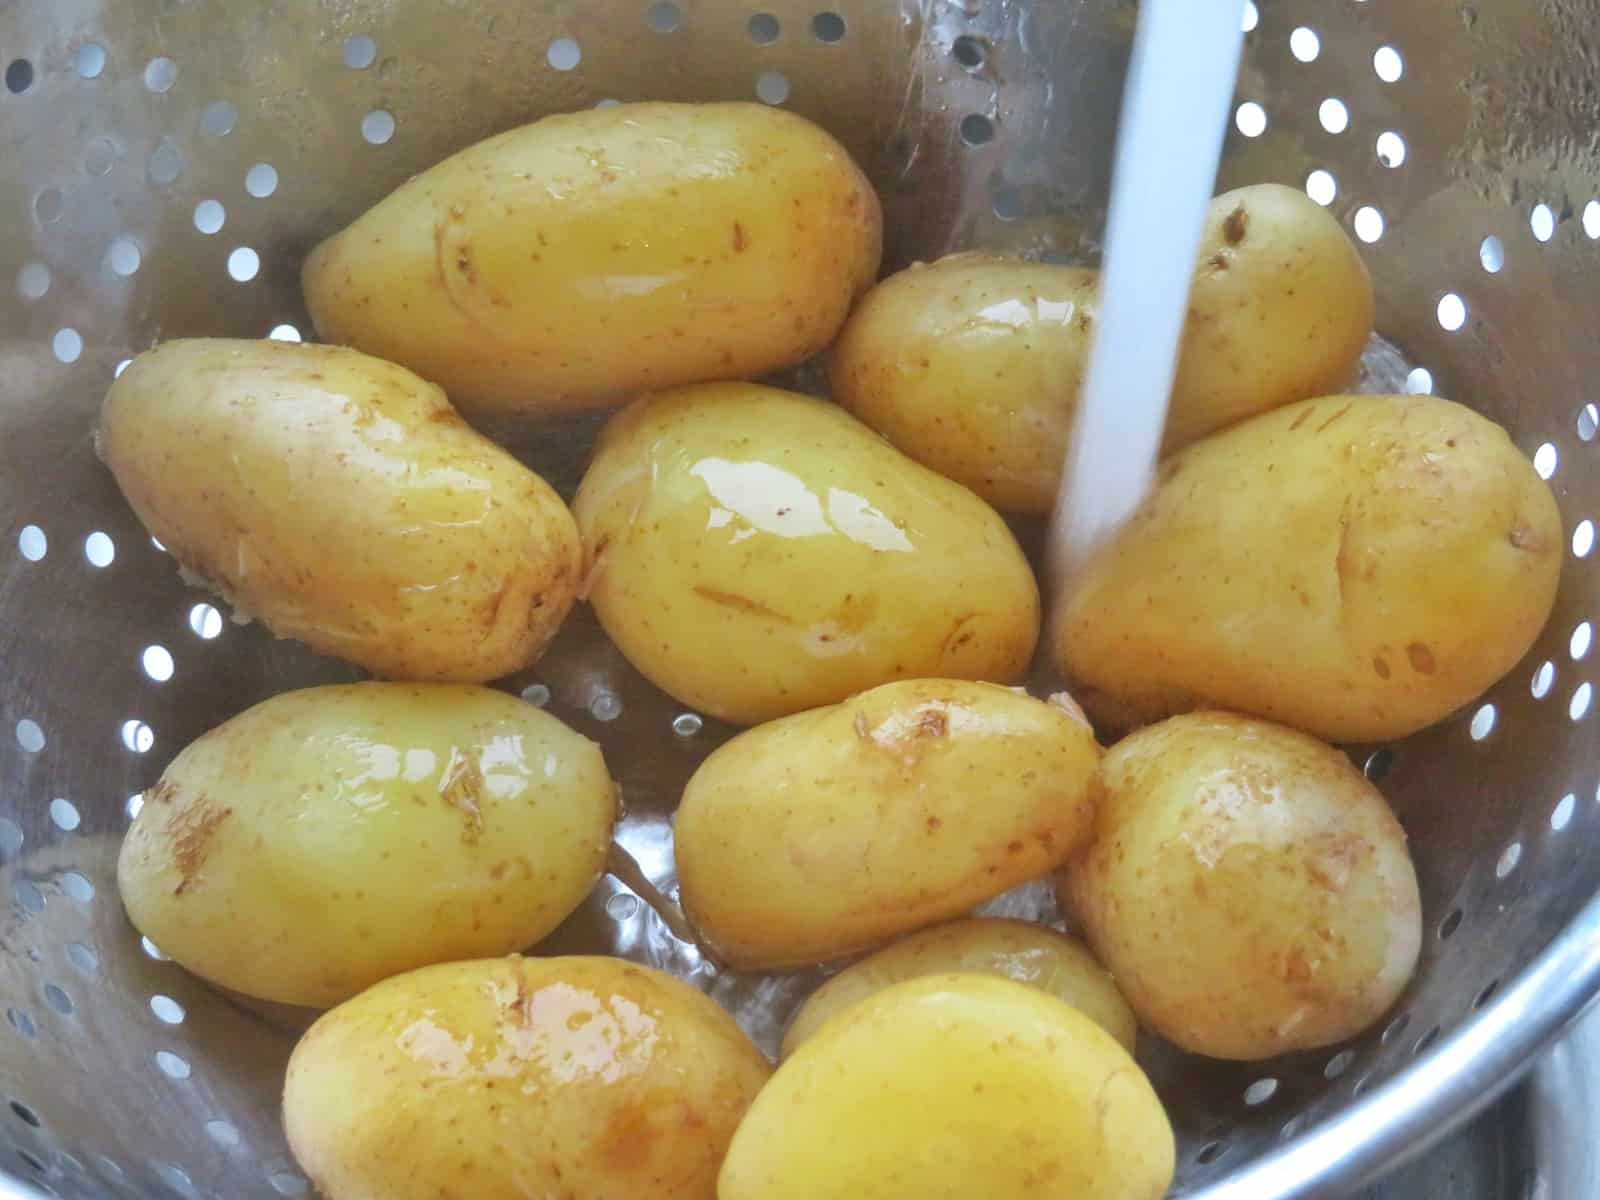 Jersey Royal potatoes under a tap